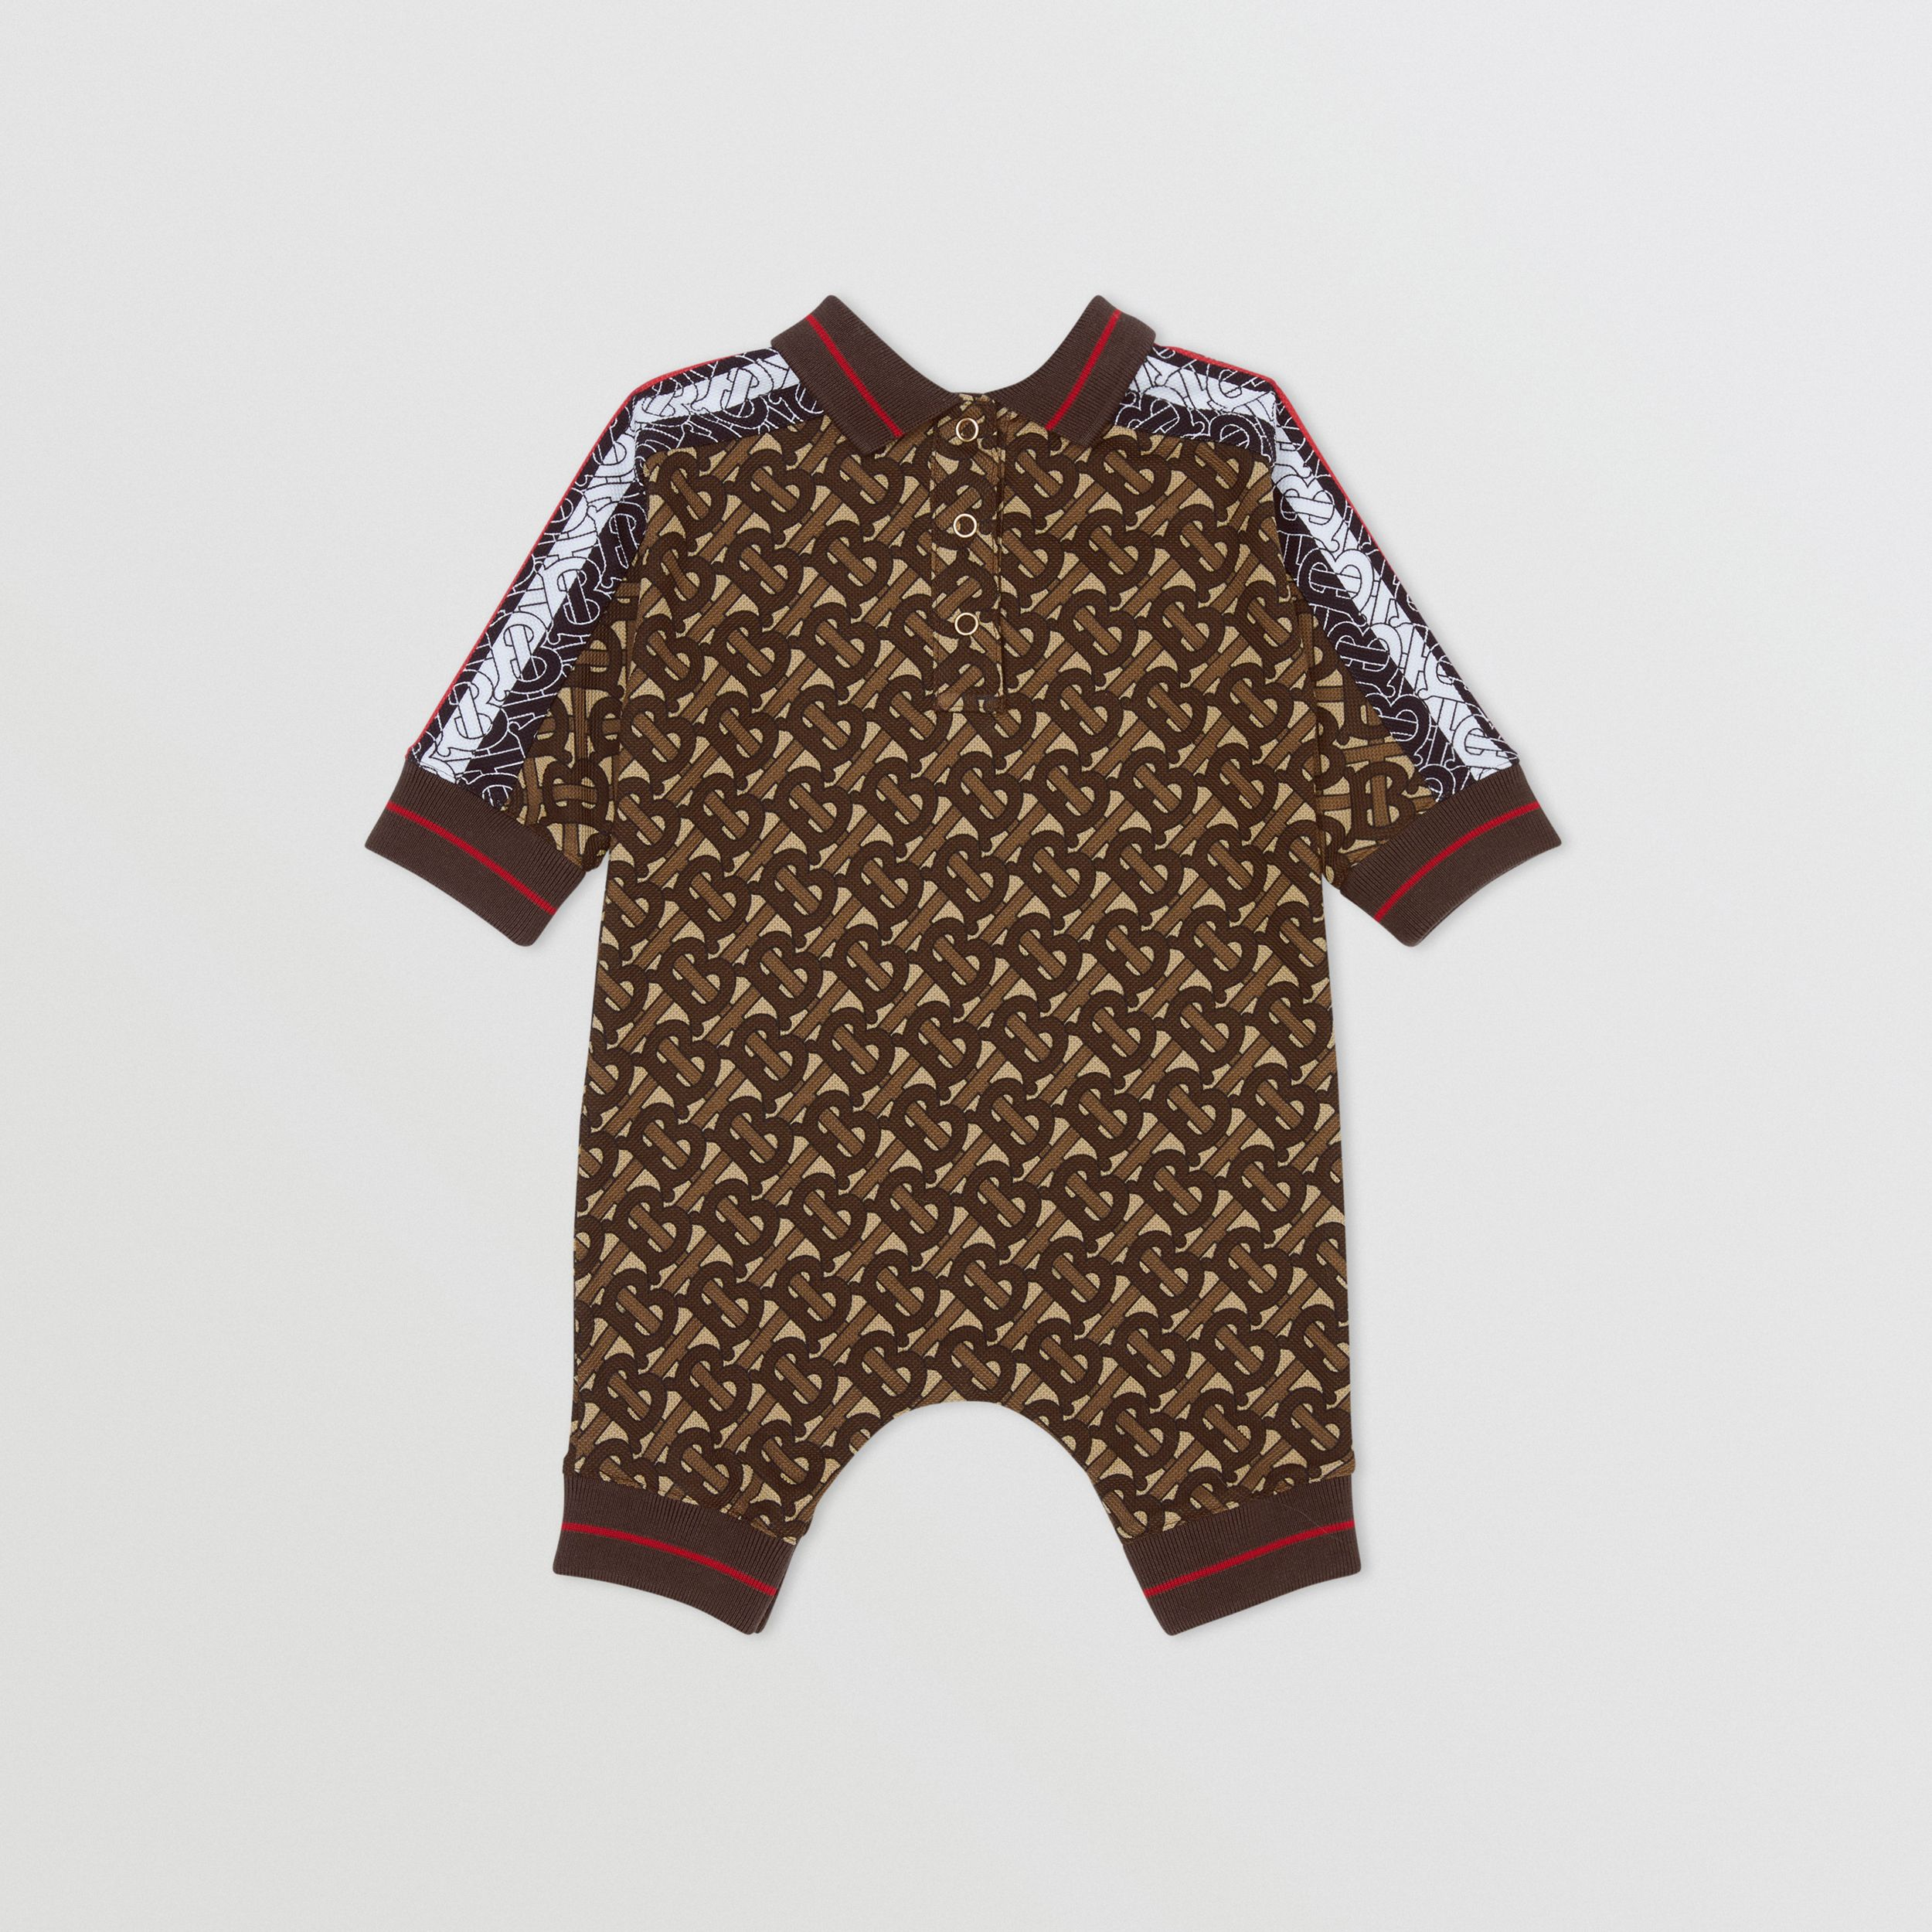 Monogram Stripe Print Cotton Piqué Jumpsuit in Bridle Brown - Children | Burberry - 4